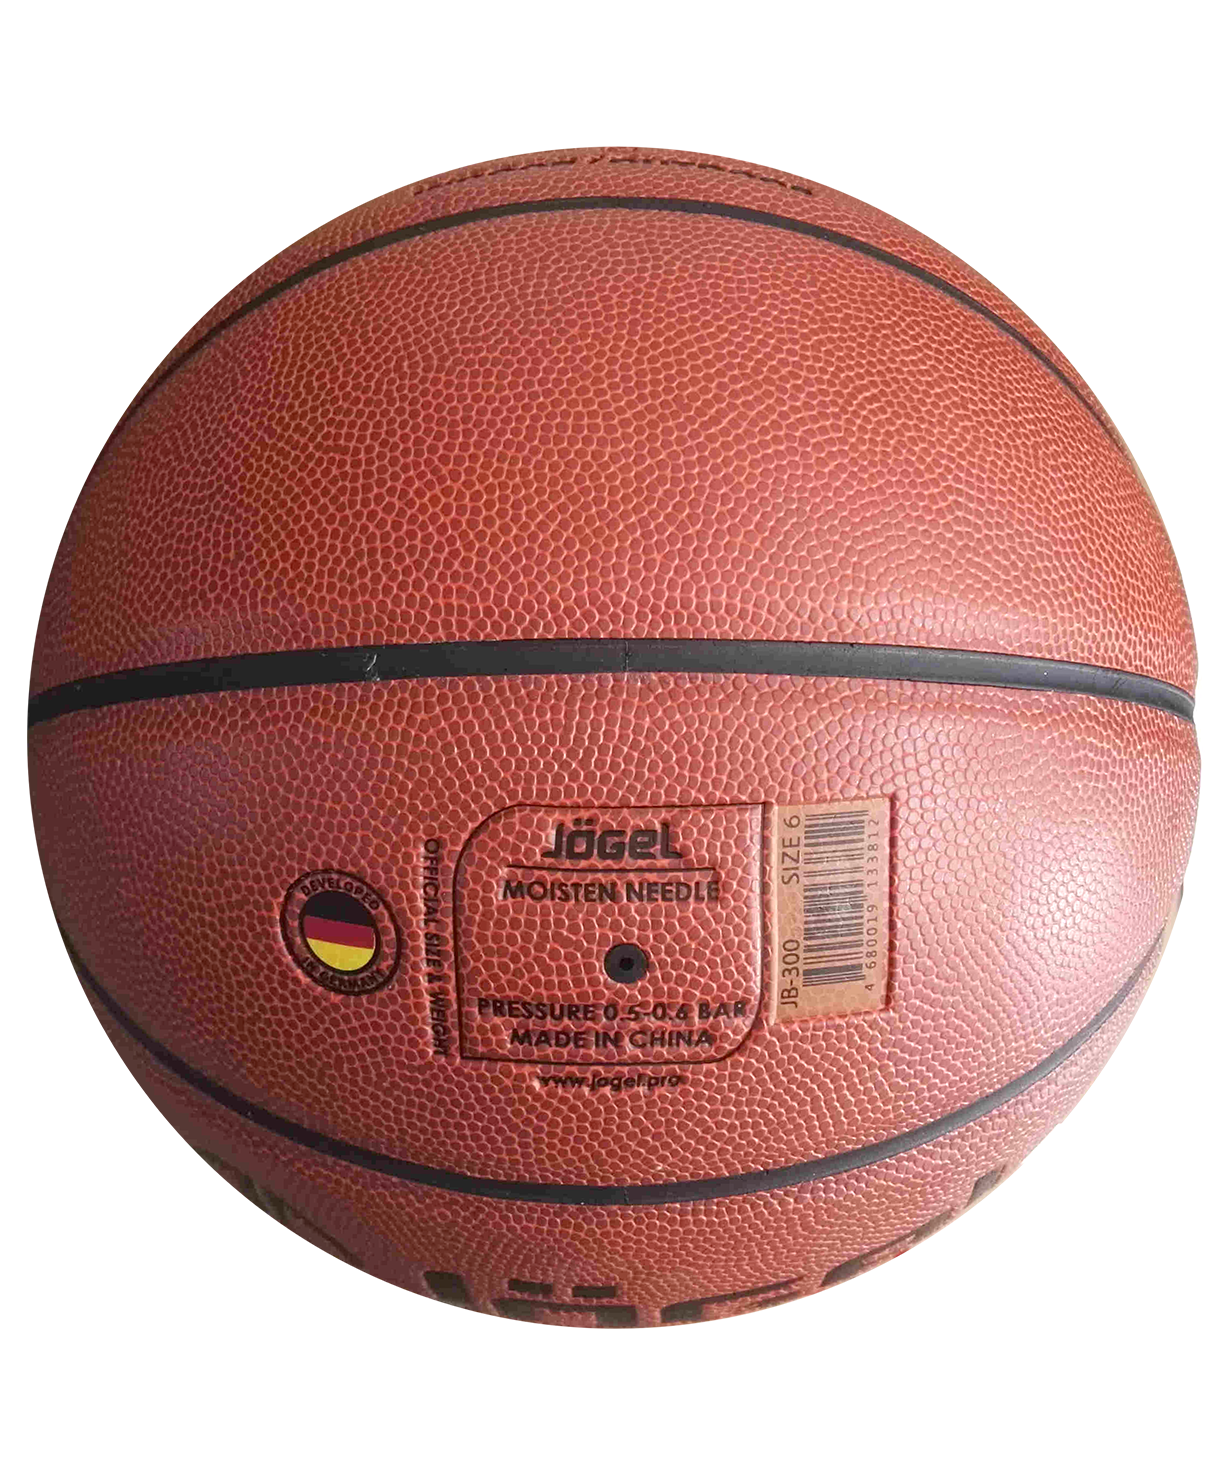 myach-basketbolnyj-jb-300-6